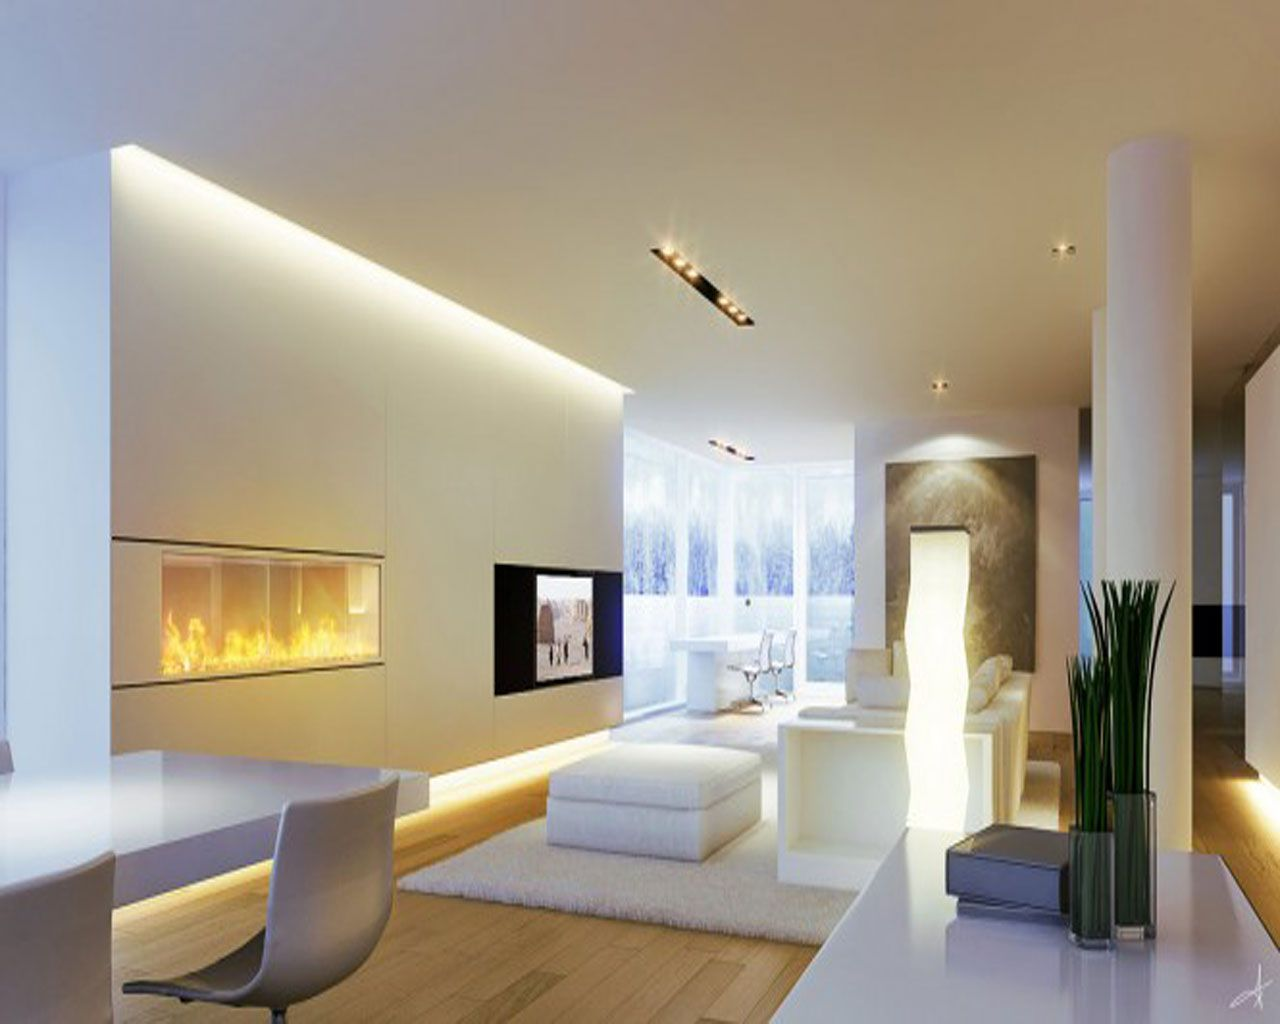 Extraordinary living room lighting design ideas inspiring Led lighting ideas for living room